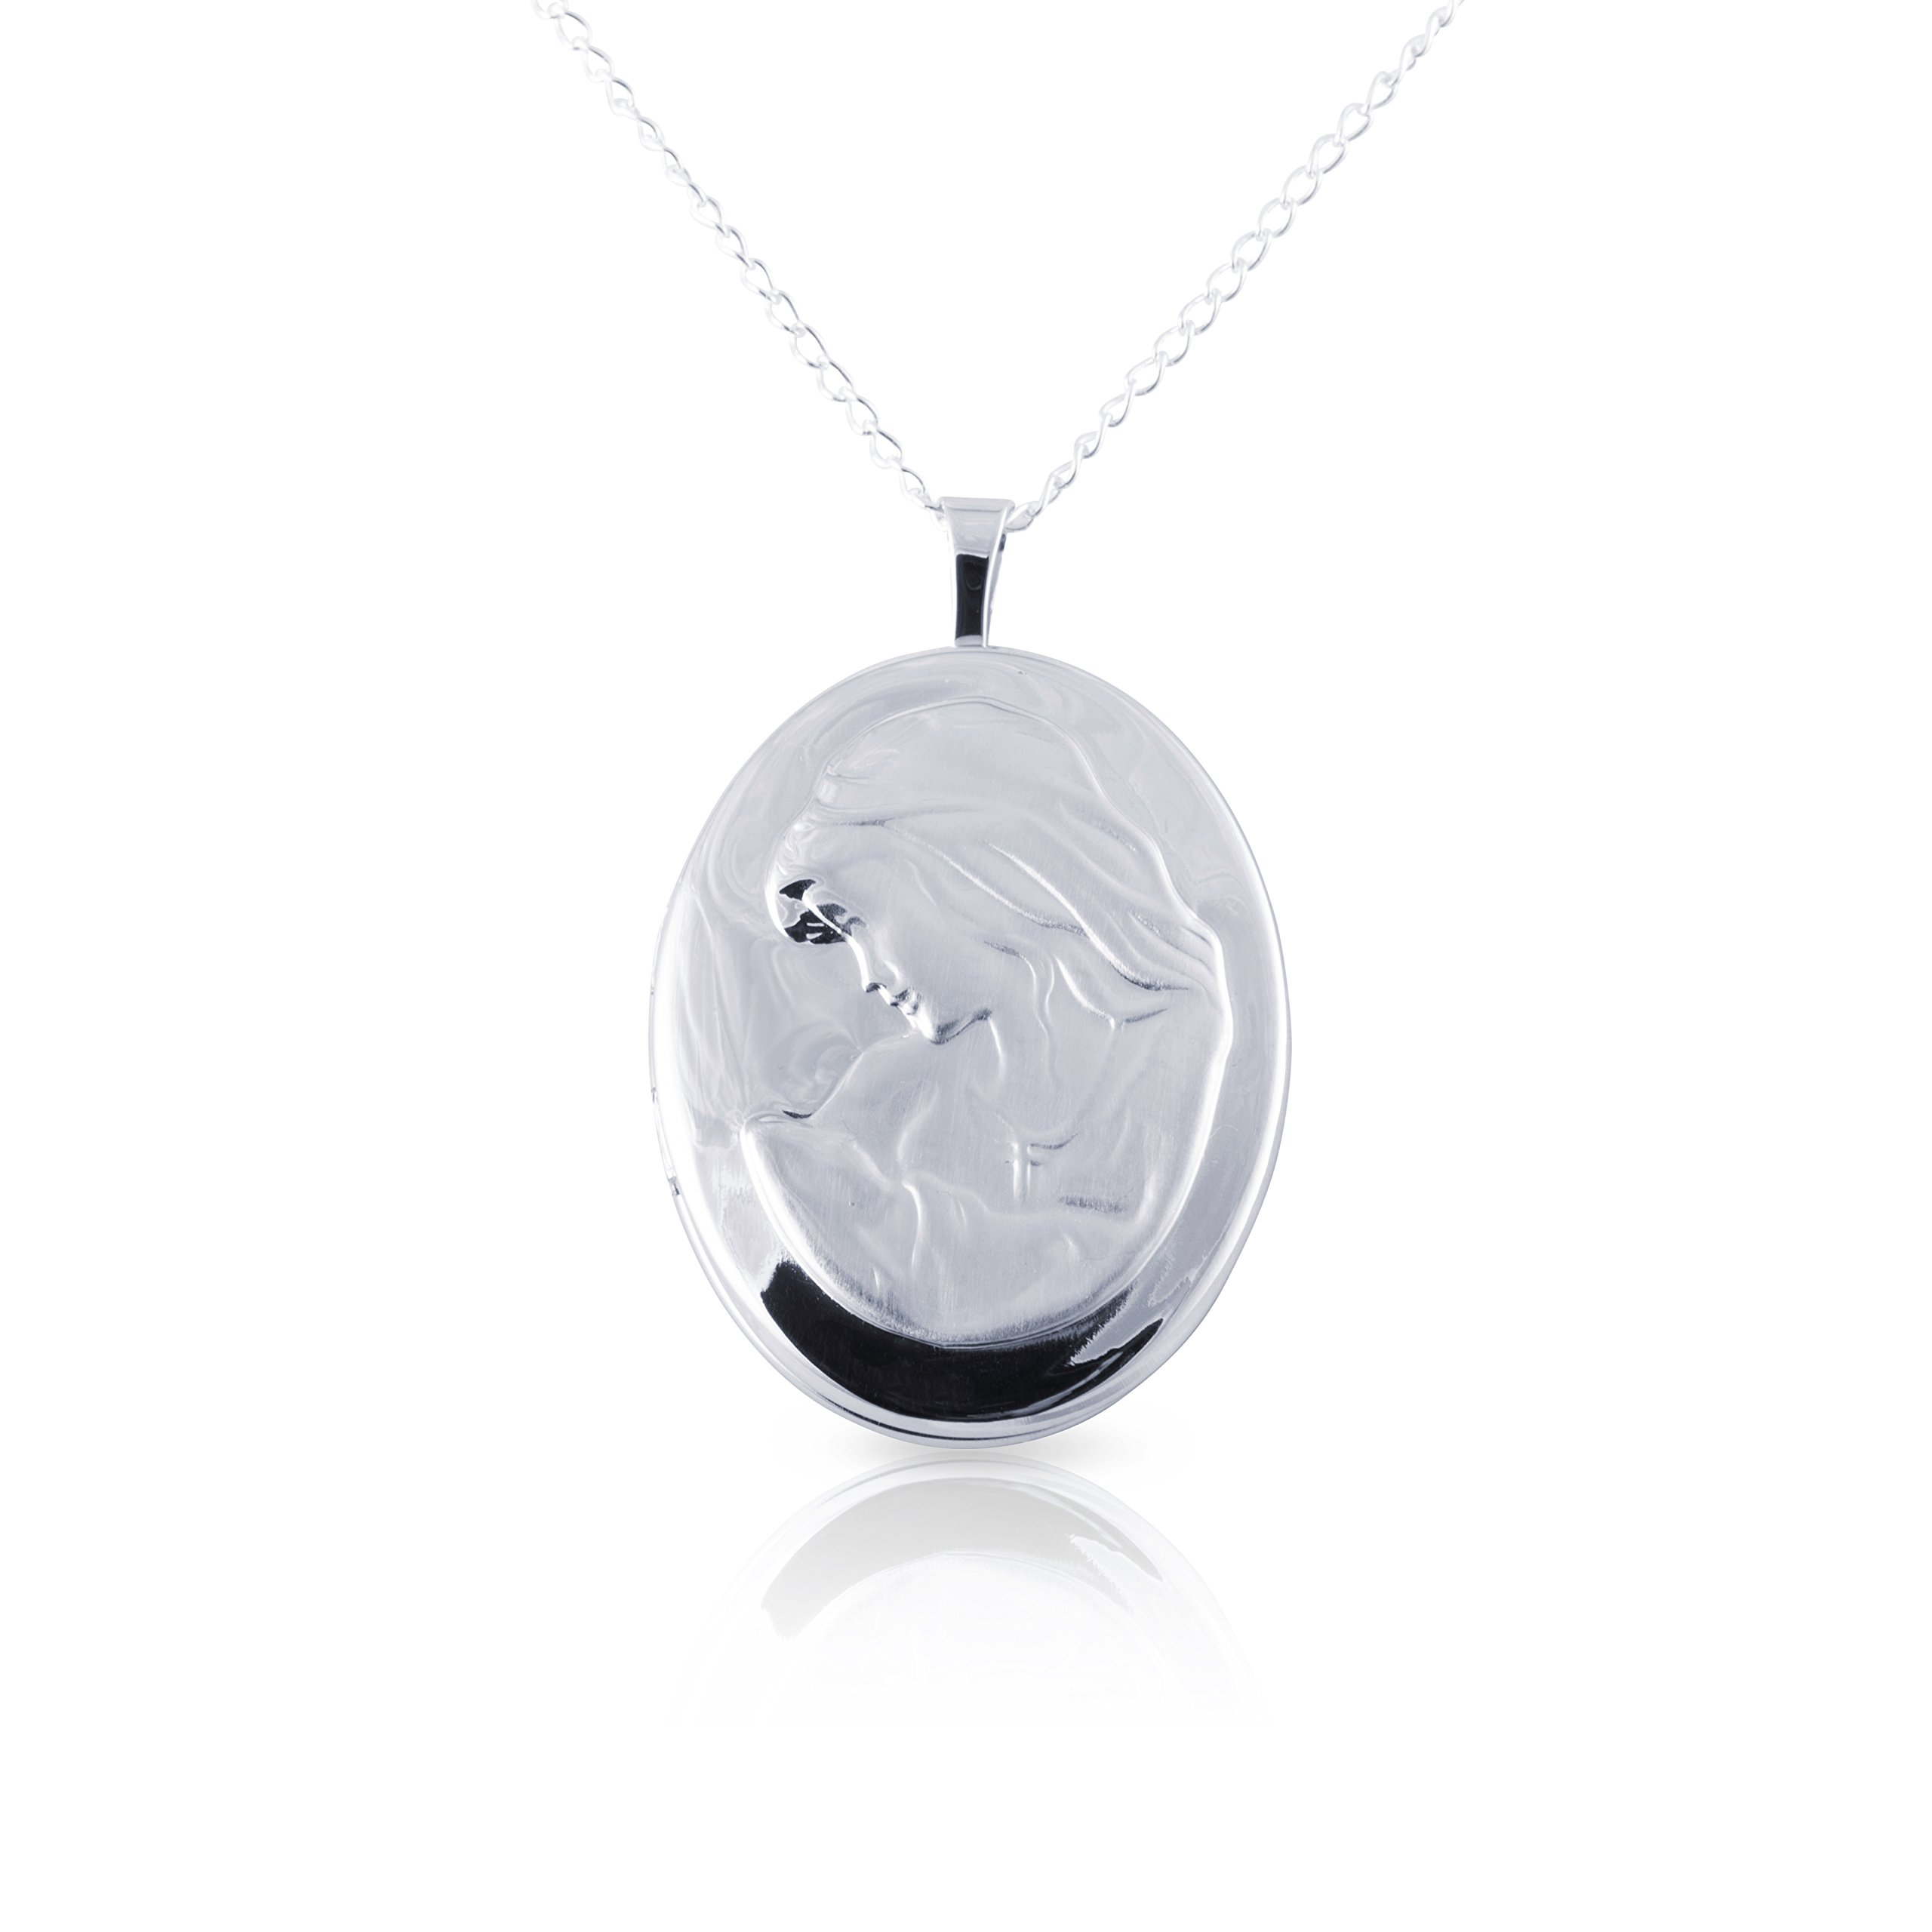 Mother & Child Oval Photo Locket Pendant, Sterling Silver with Necklace Chain by Silver on the Rocks